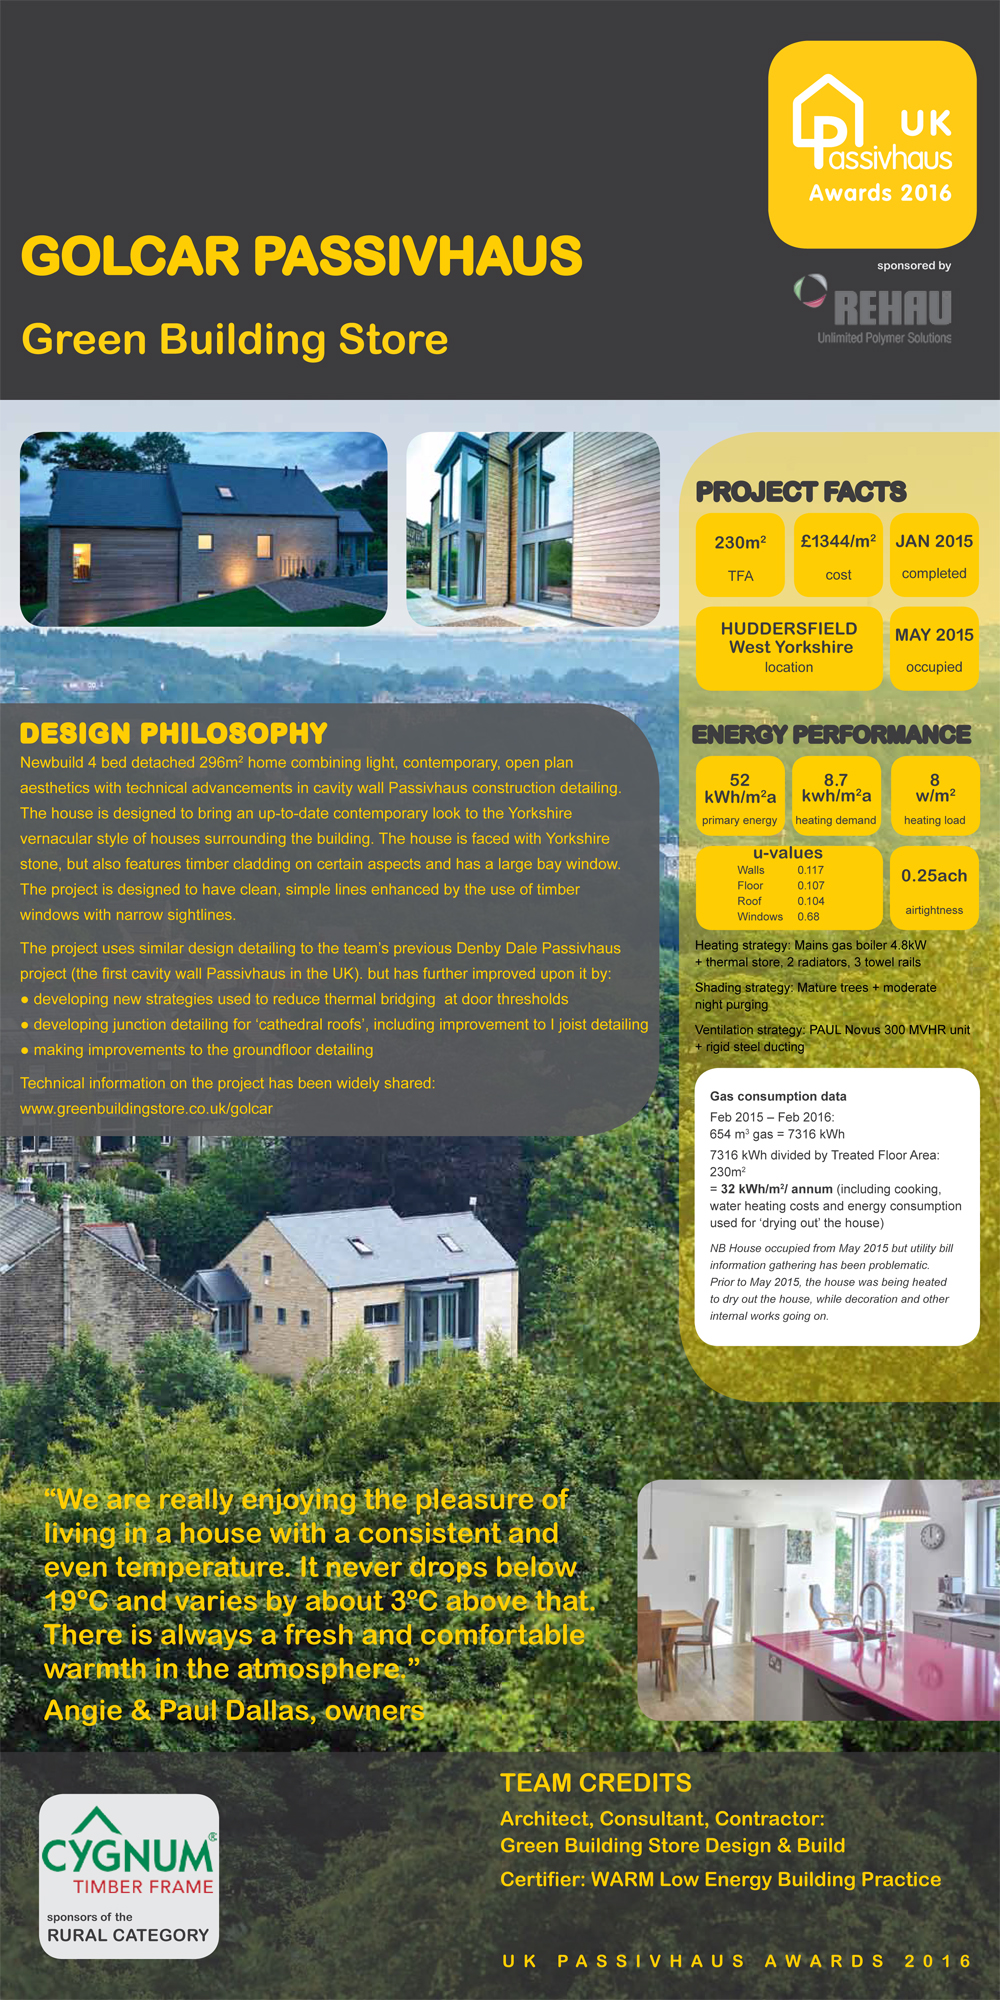 Golcar Passivhaus project factfile